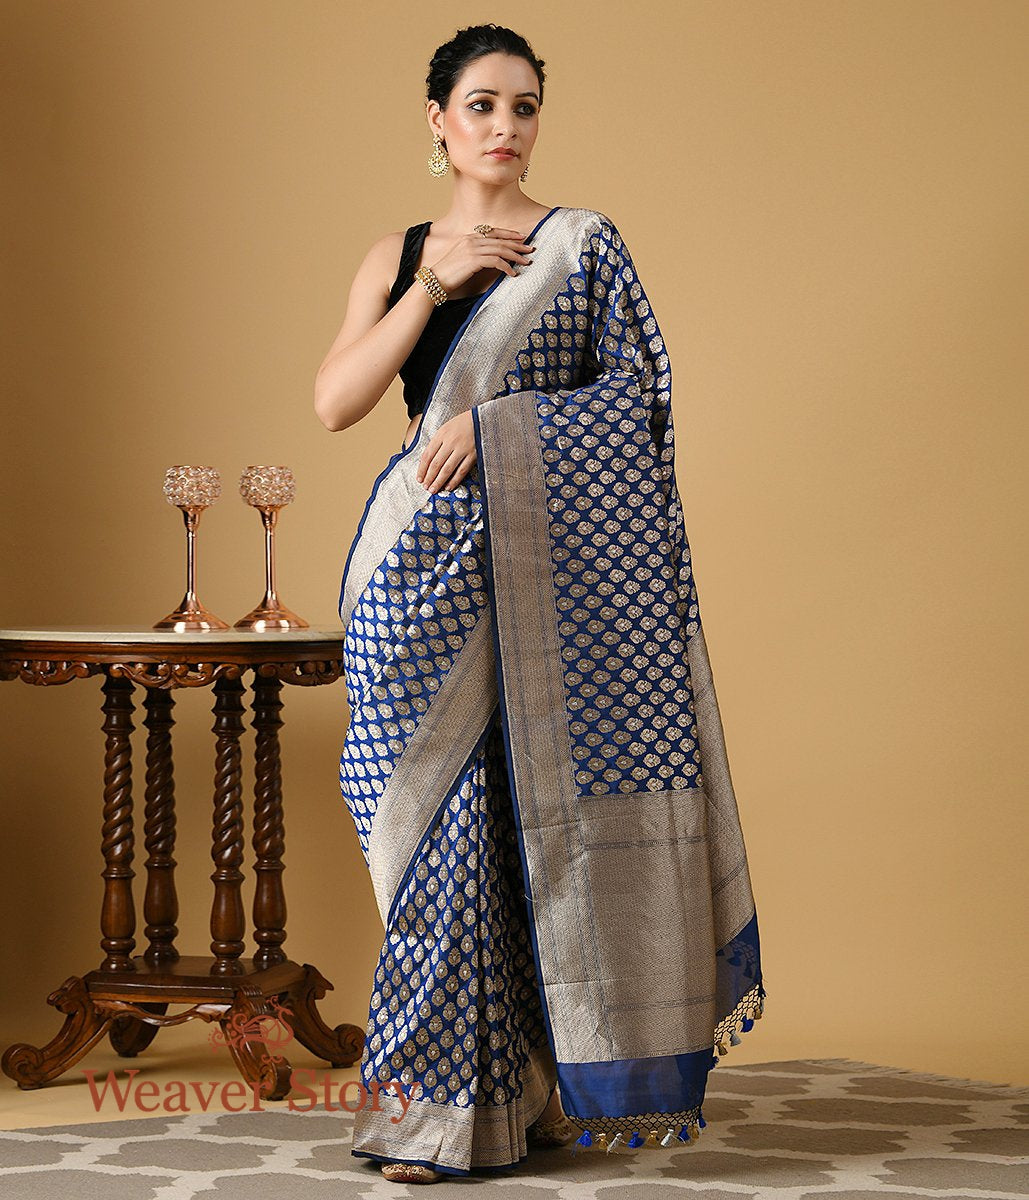 Handwoven Midnight Blue Katan Silk Saree with Gold Zari Motifs